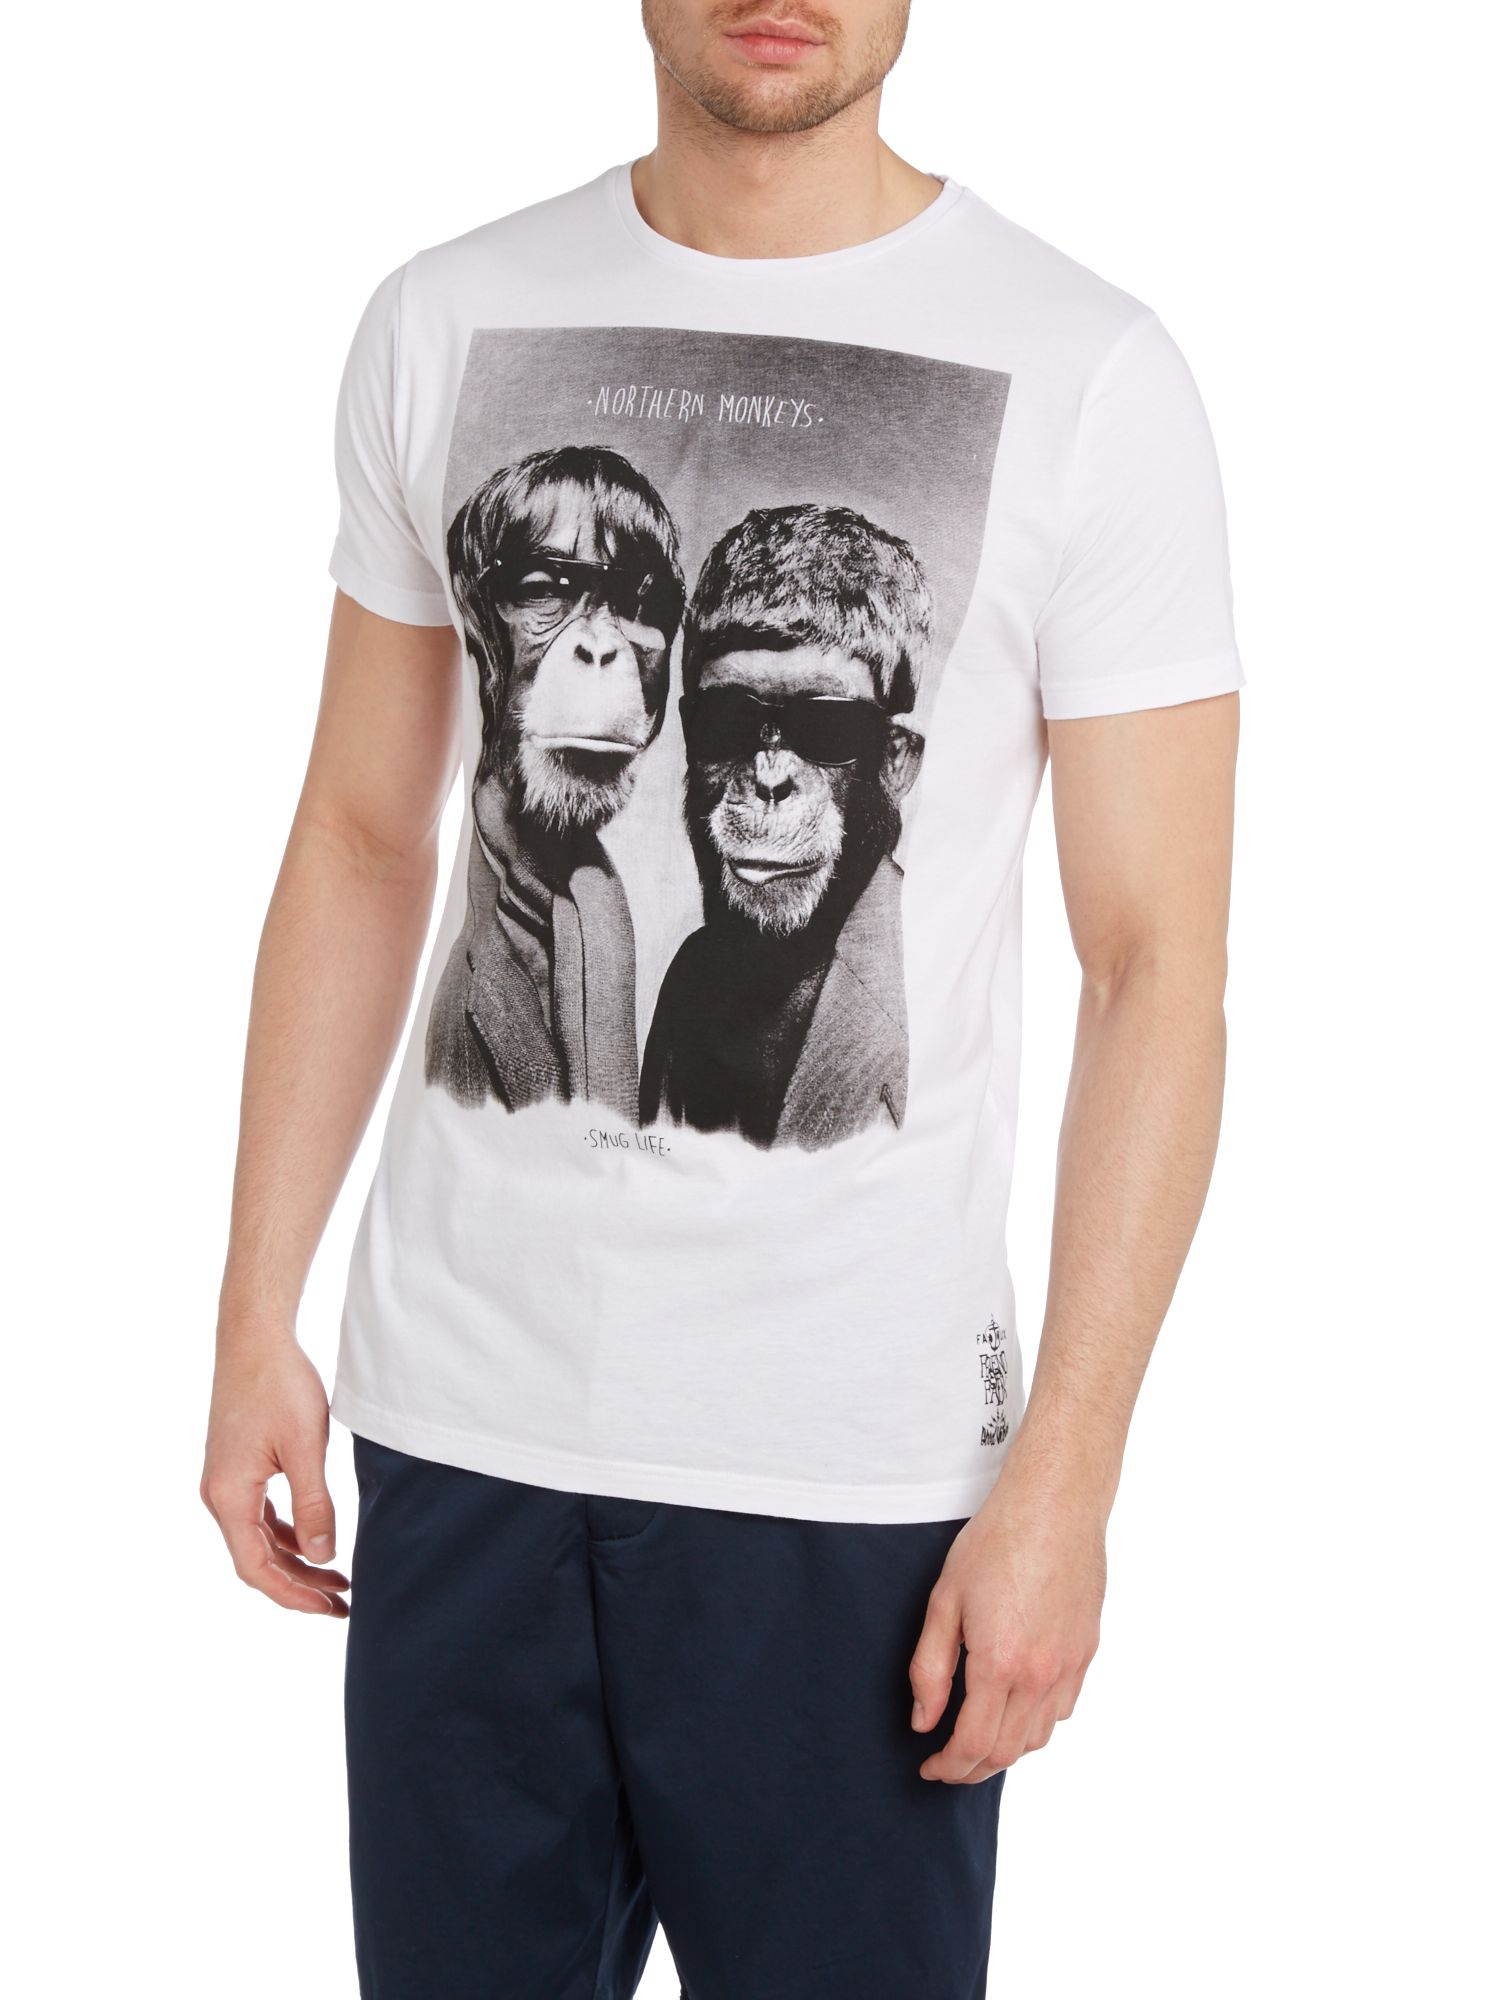 Northern monkeys print t shirt